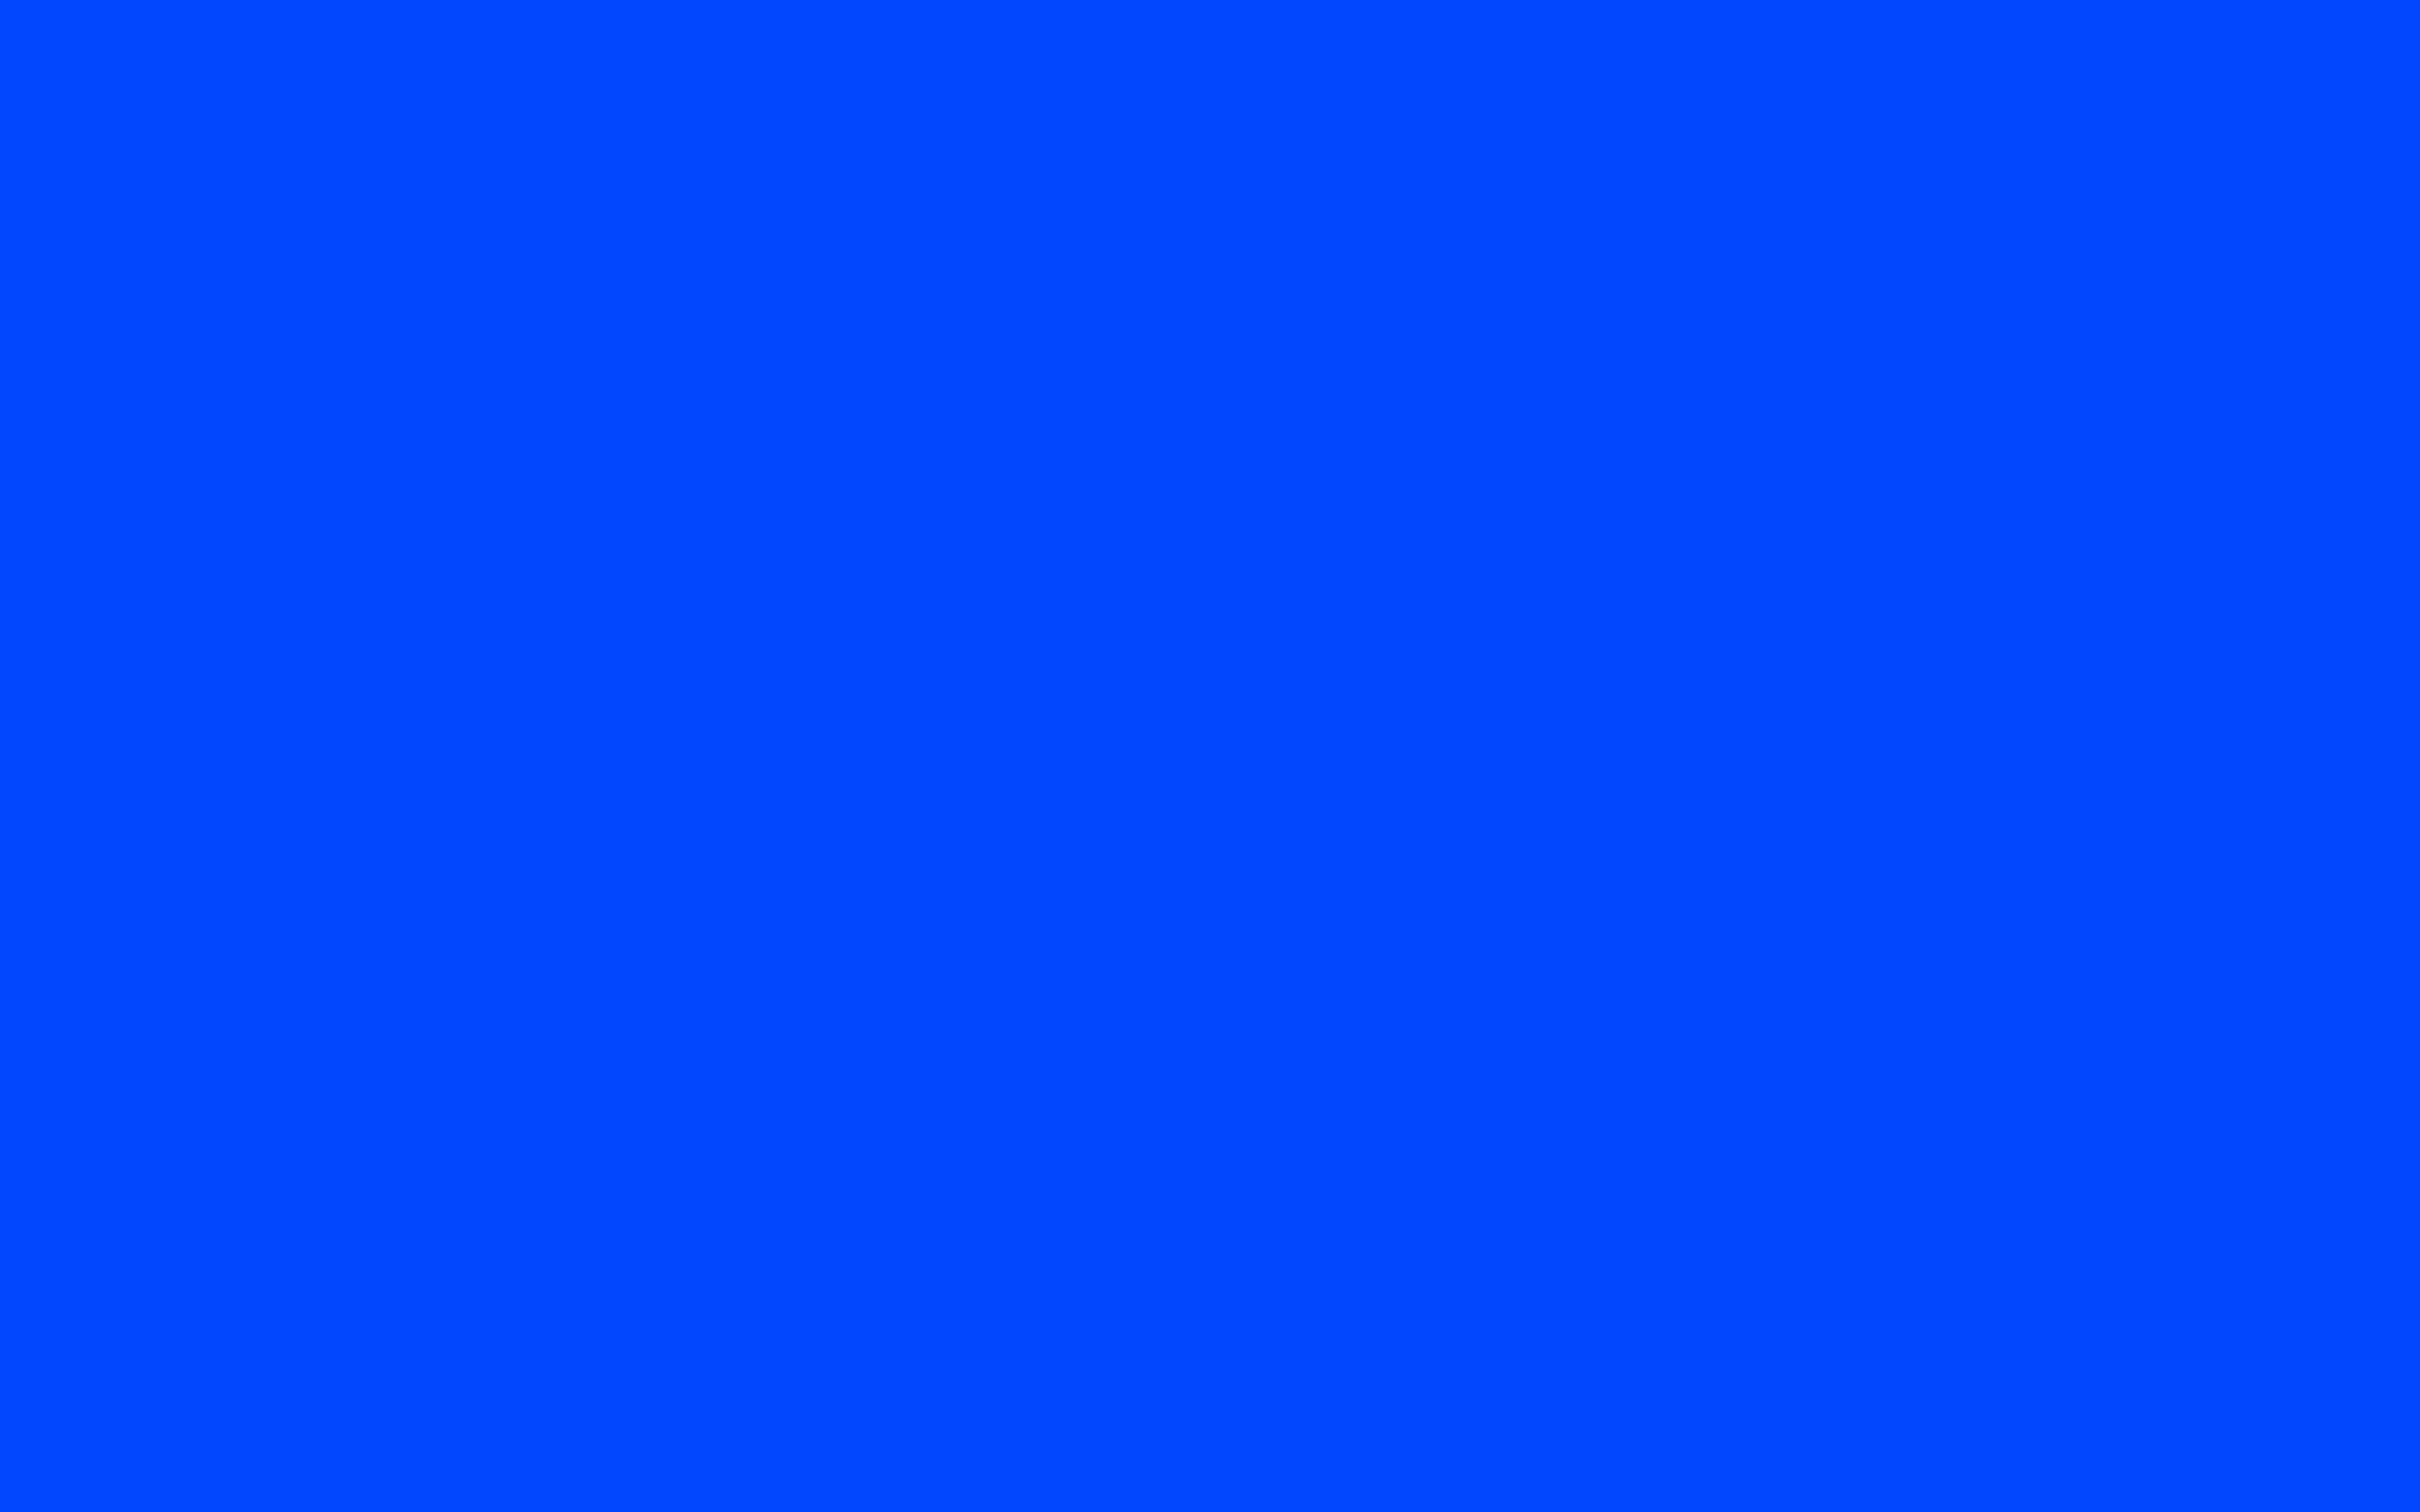 2880x1800 Blue RYB Solid Color Background